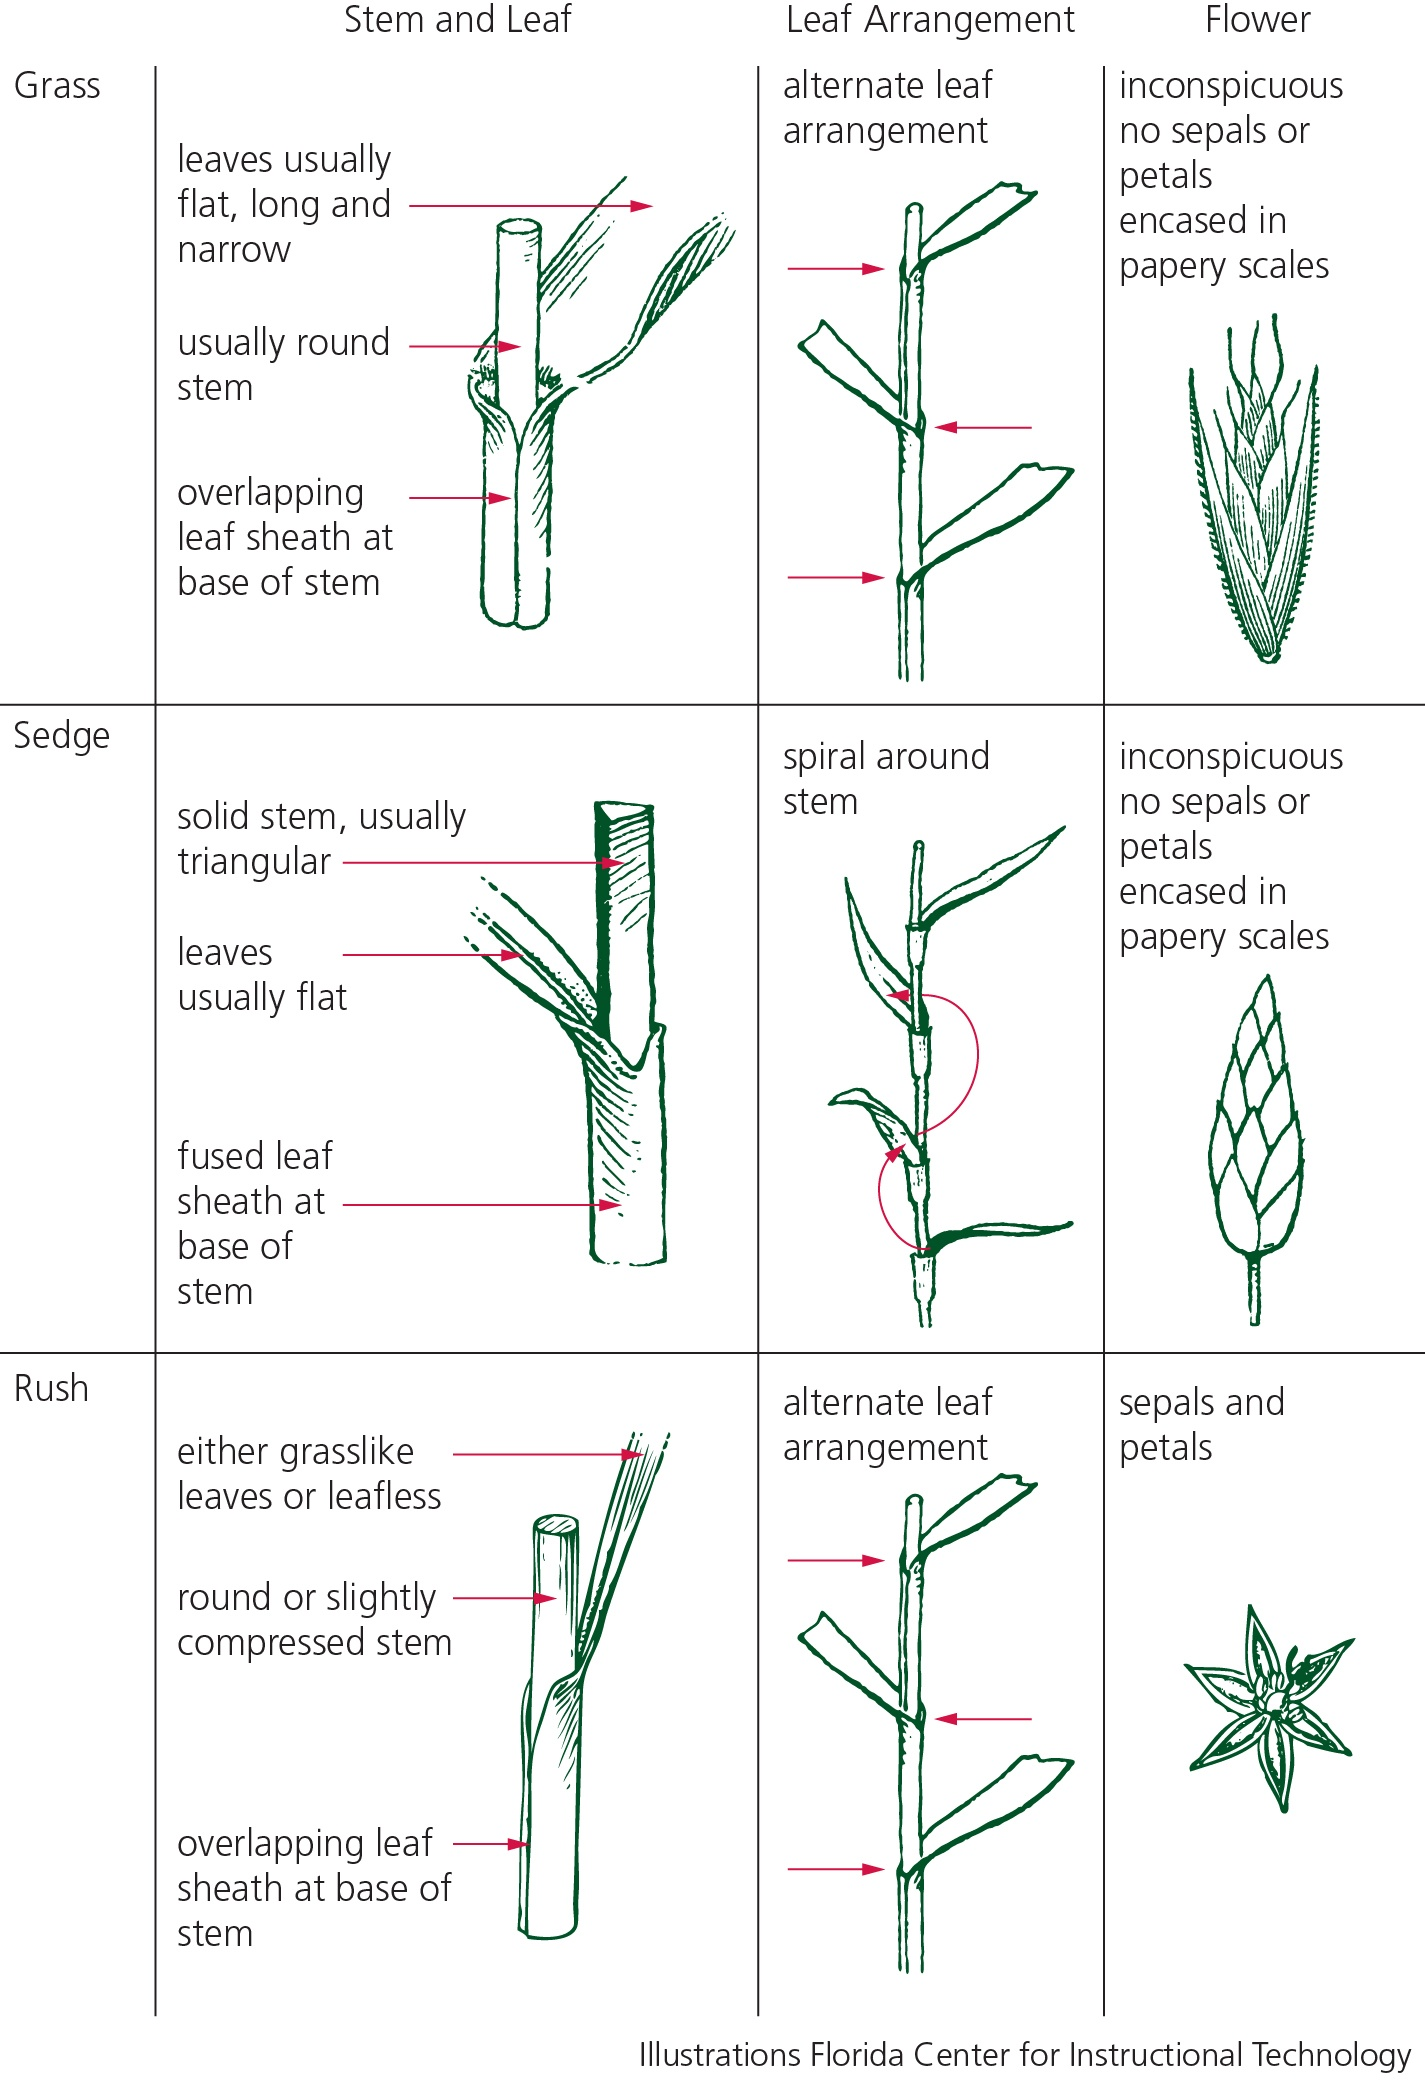 illustrations showing differences between grasses, sedges and edges